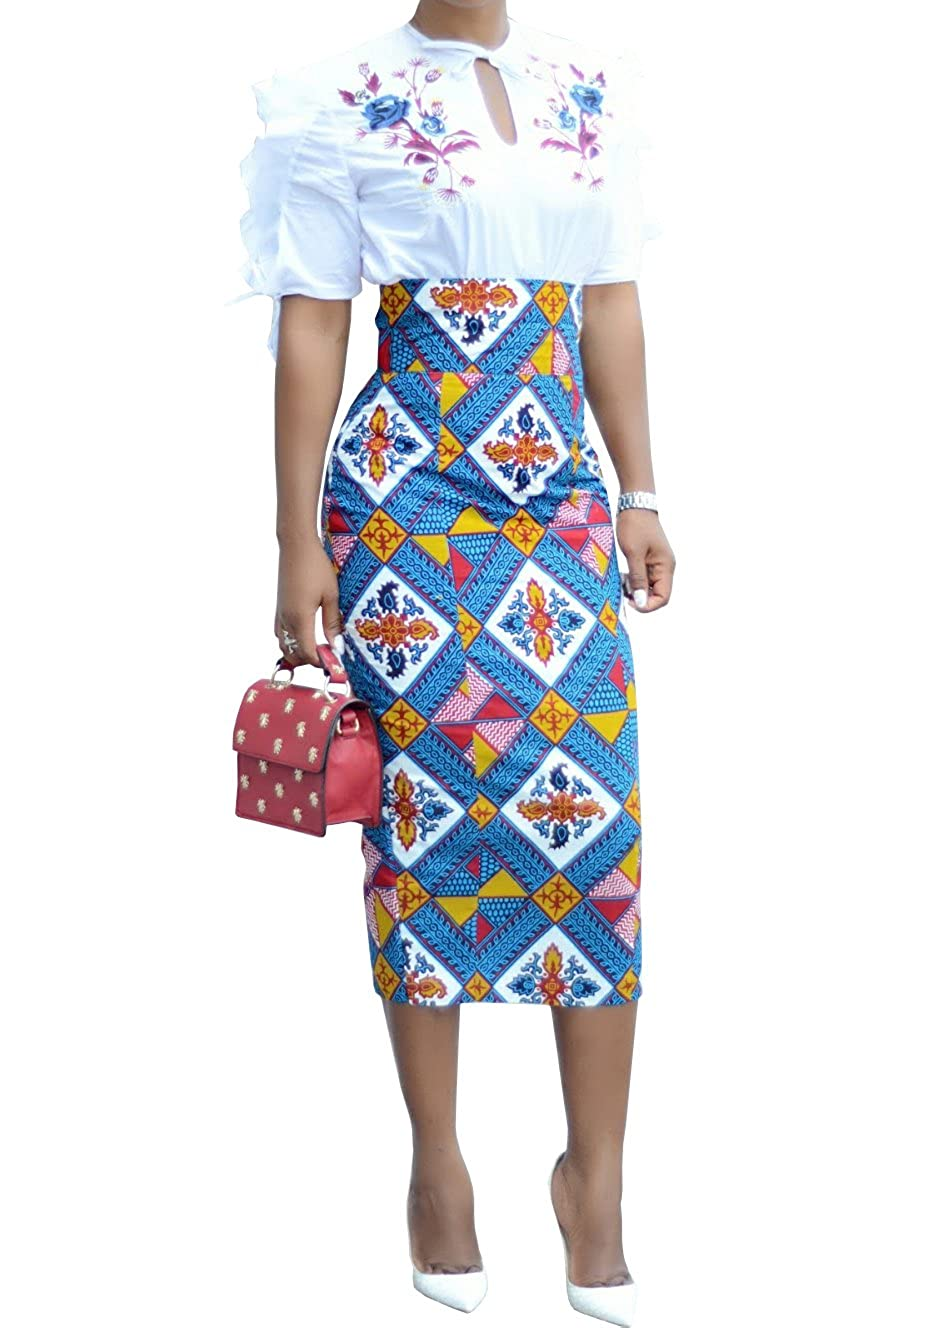 6b74d58a49 Amazon.com: Ermonn Women African Print Knee Length Skirt Slim Fit Midi  Pencil Skirt: Clothing